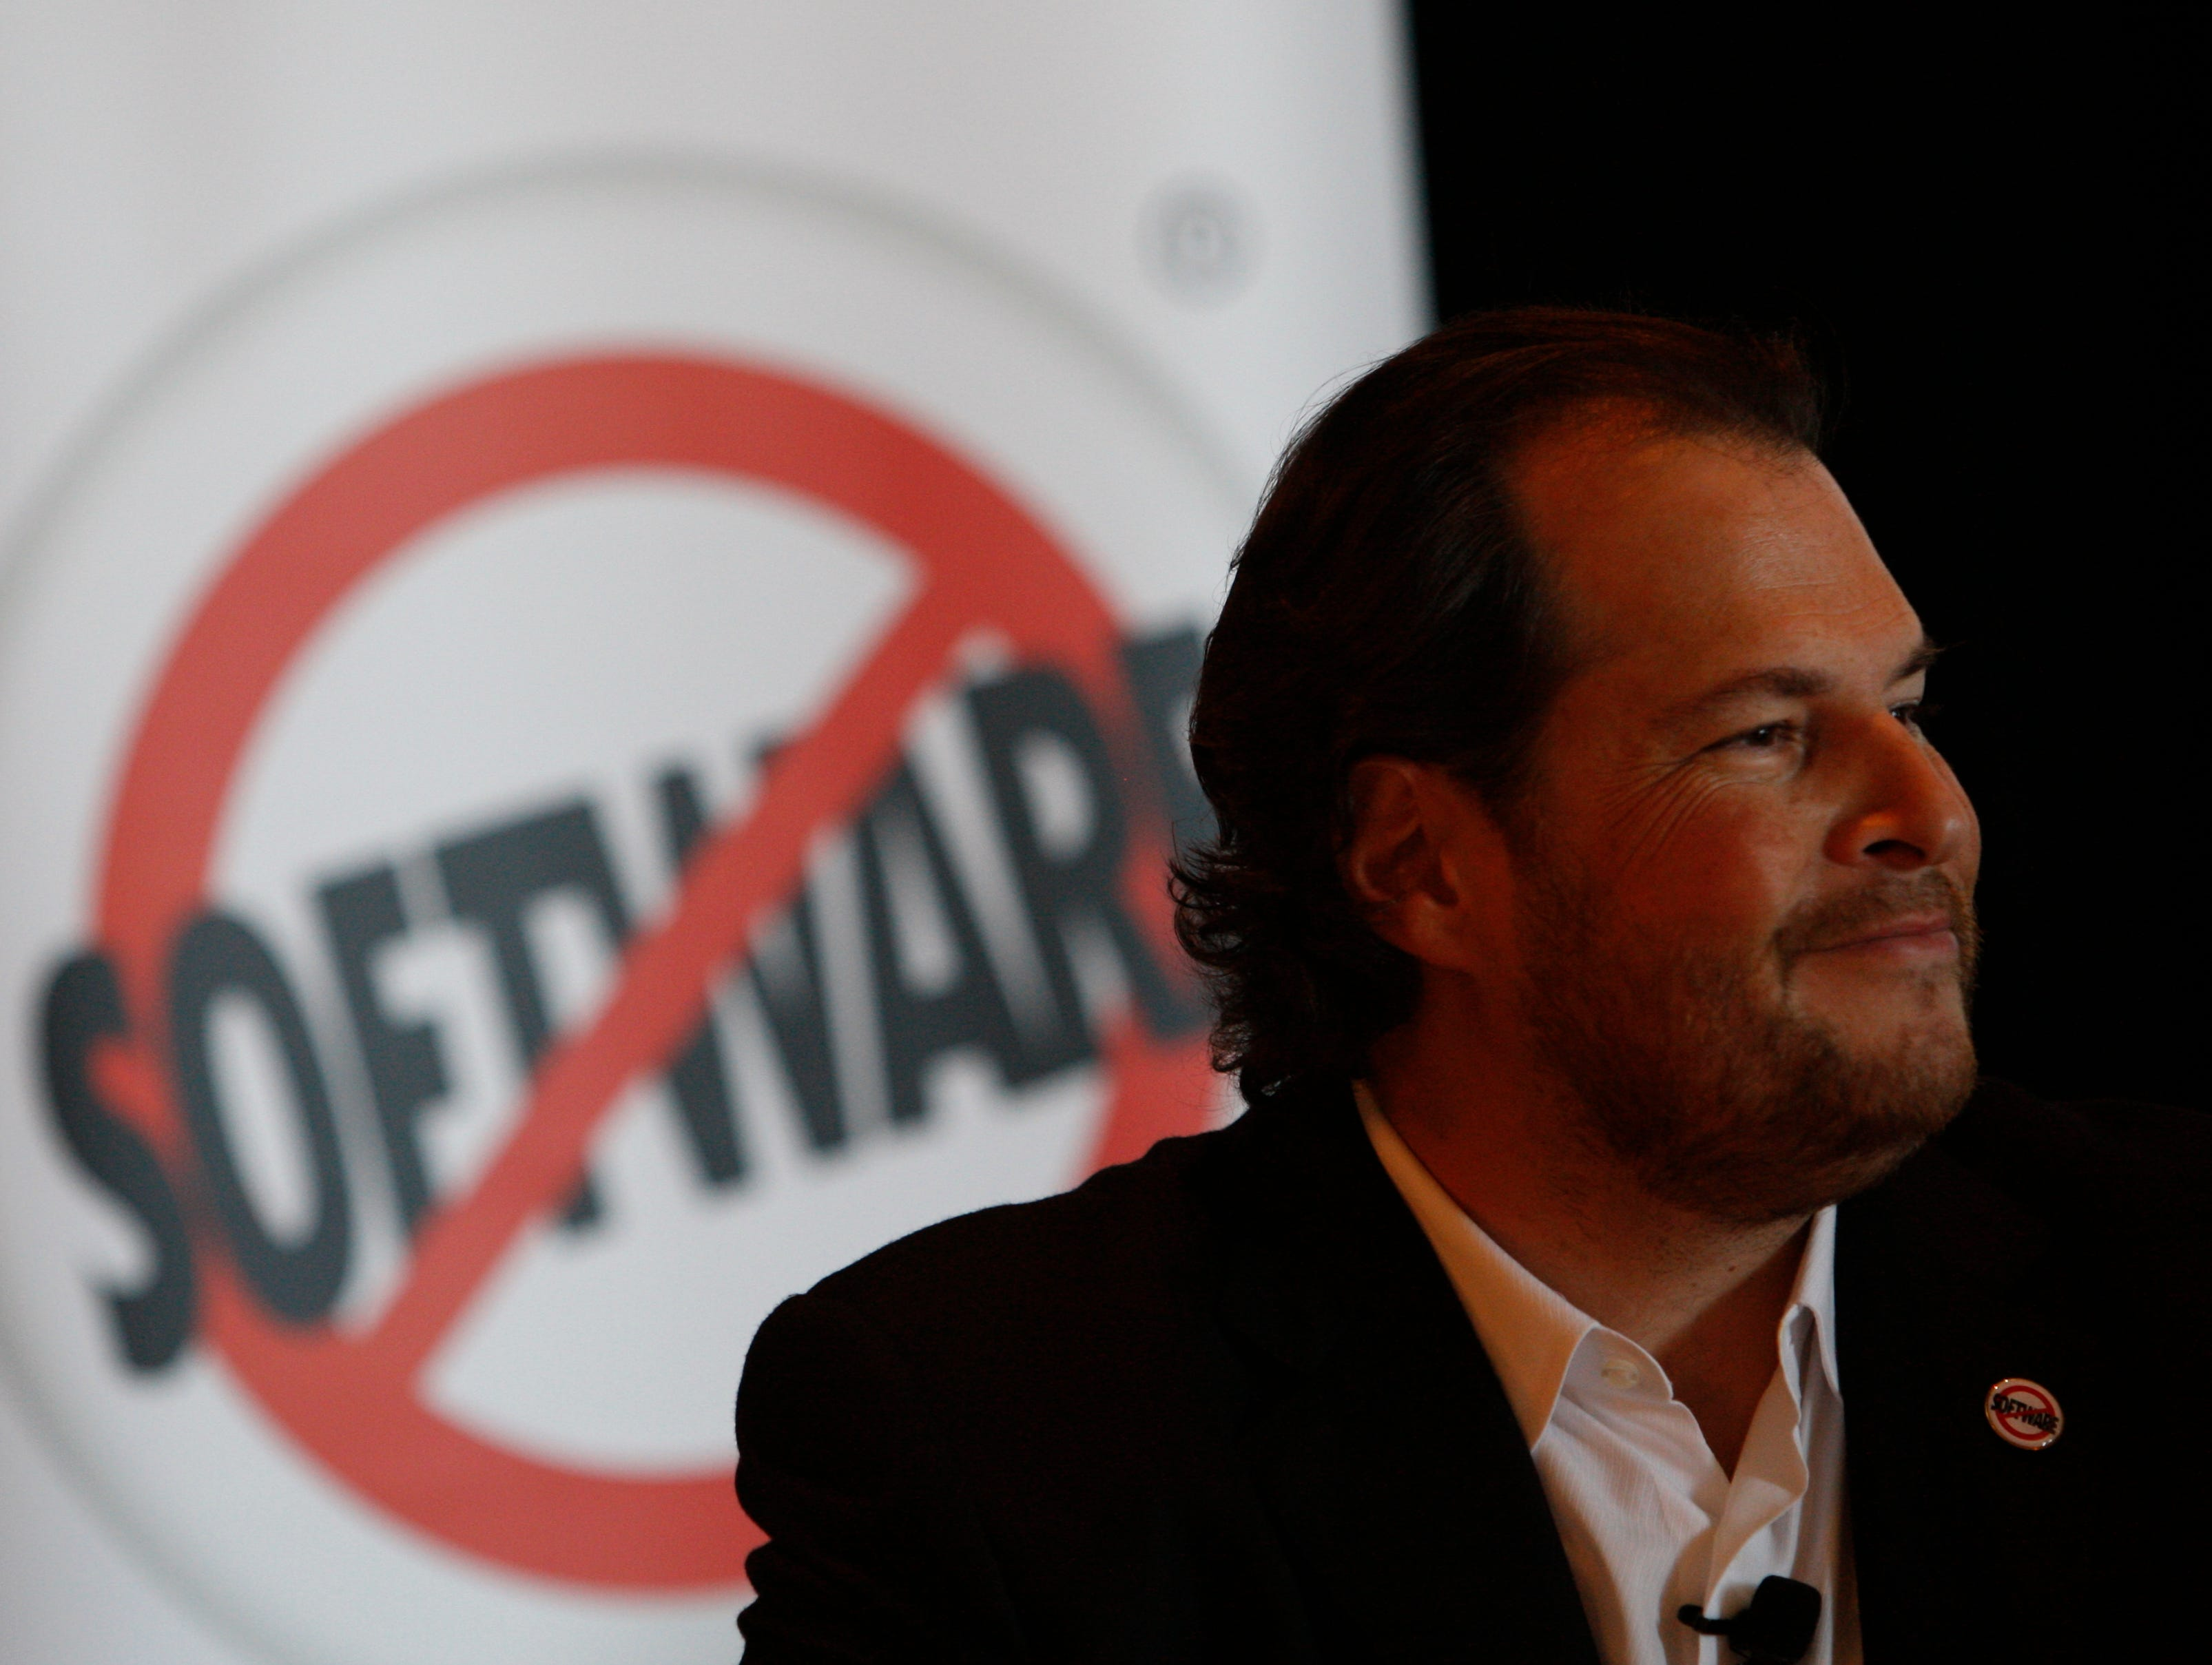 Salesforce.com CEO Marc Benioff. Salesforce.com is target of takeover interest, a report says.